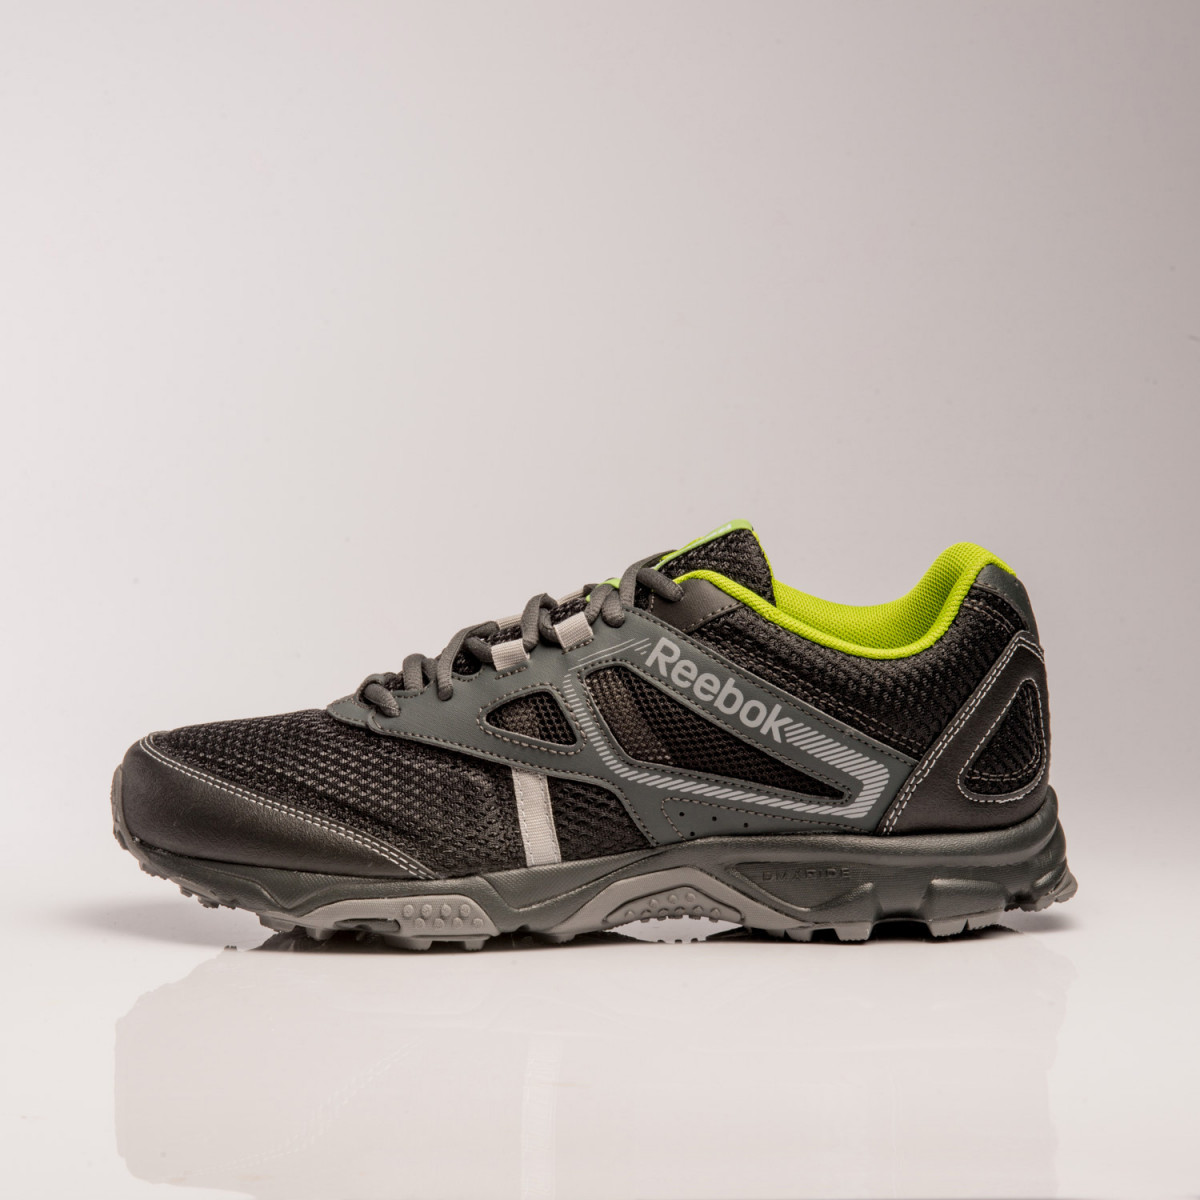 3afb71efabe Zapatillas Reebok Trail Voyager Rs (M)